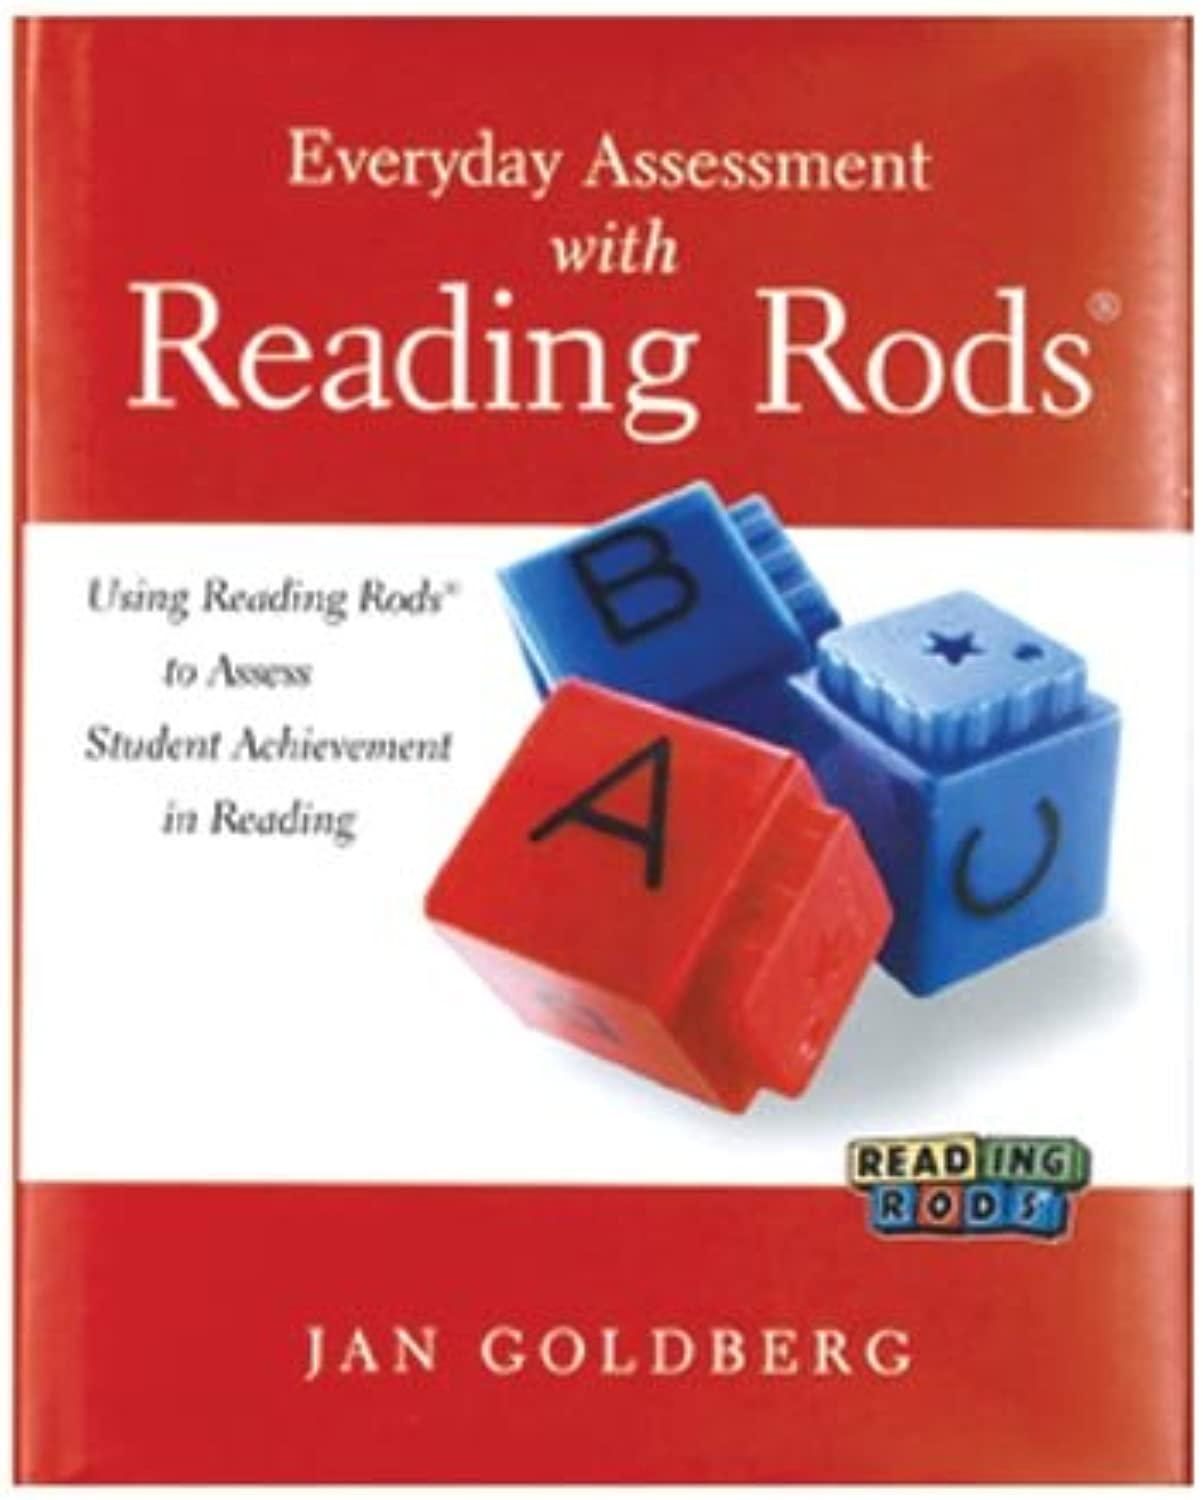 Everyday Assessment with Reading Rods By Jan goldberg, Ages 58.